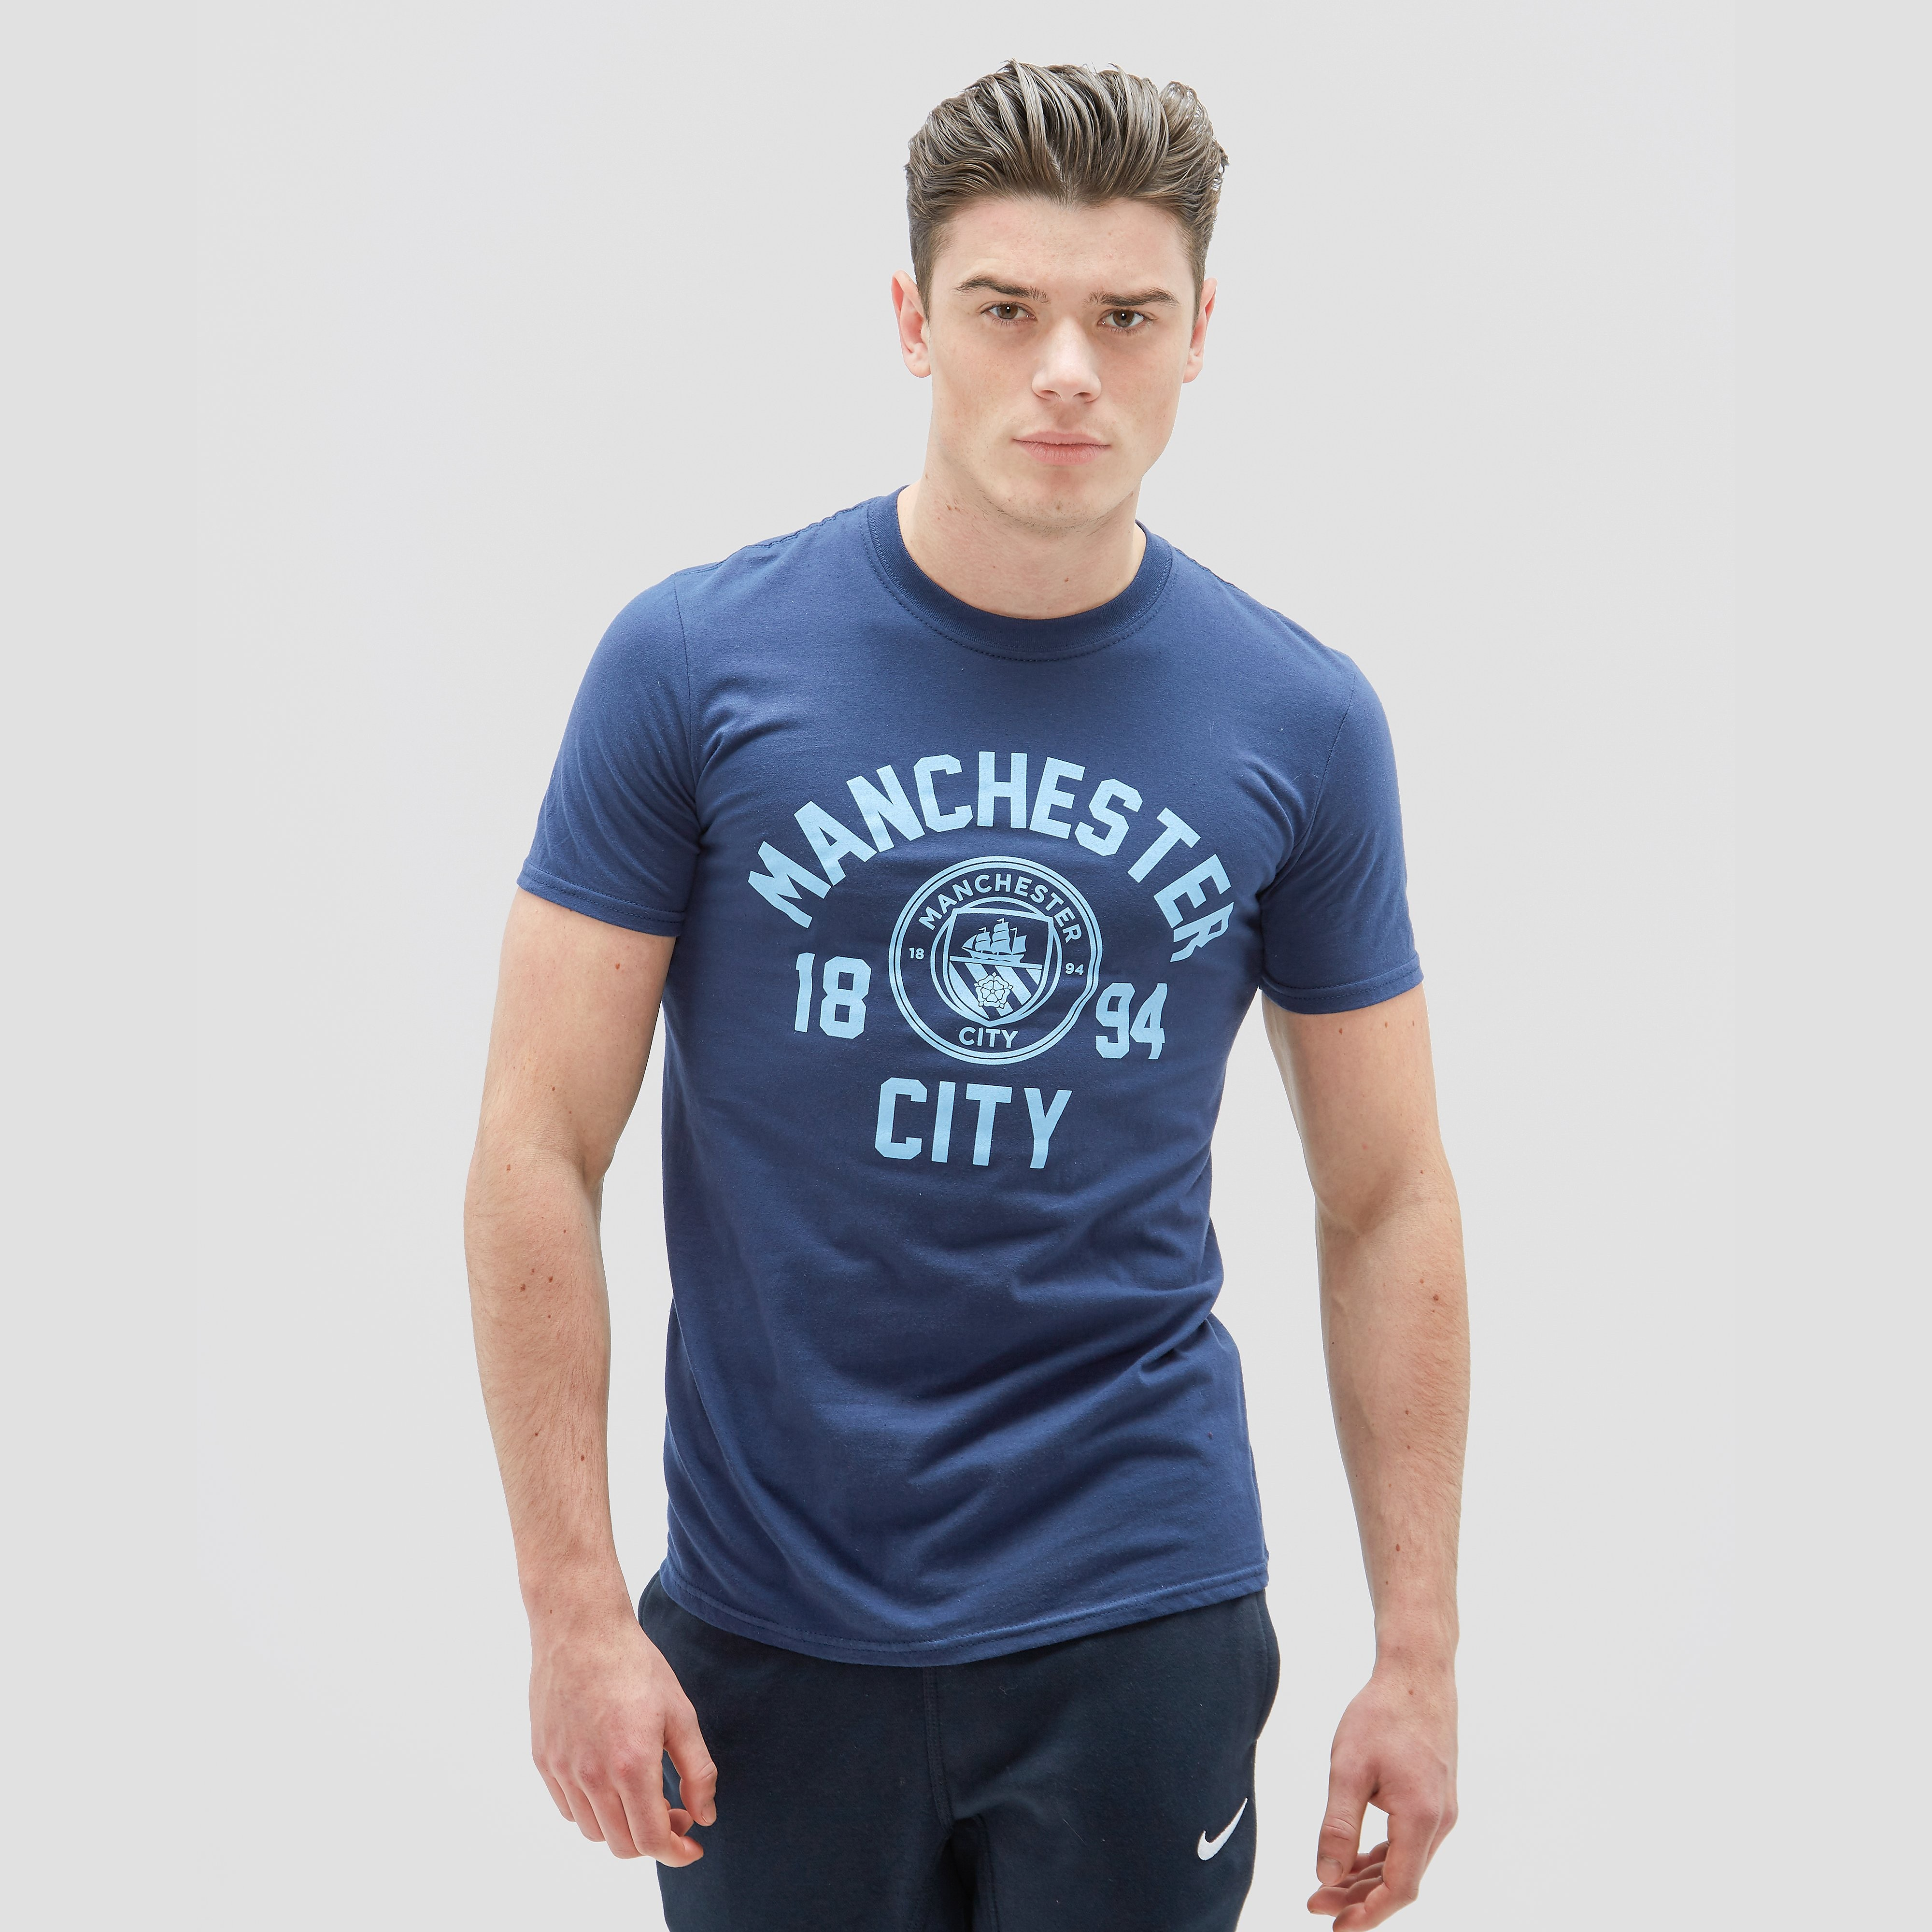 SOURCELAB MANCHESTER CITY FC GRAPHIC SHIRT